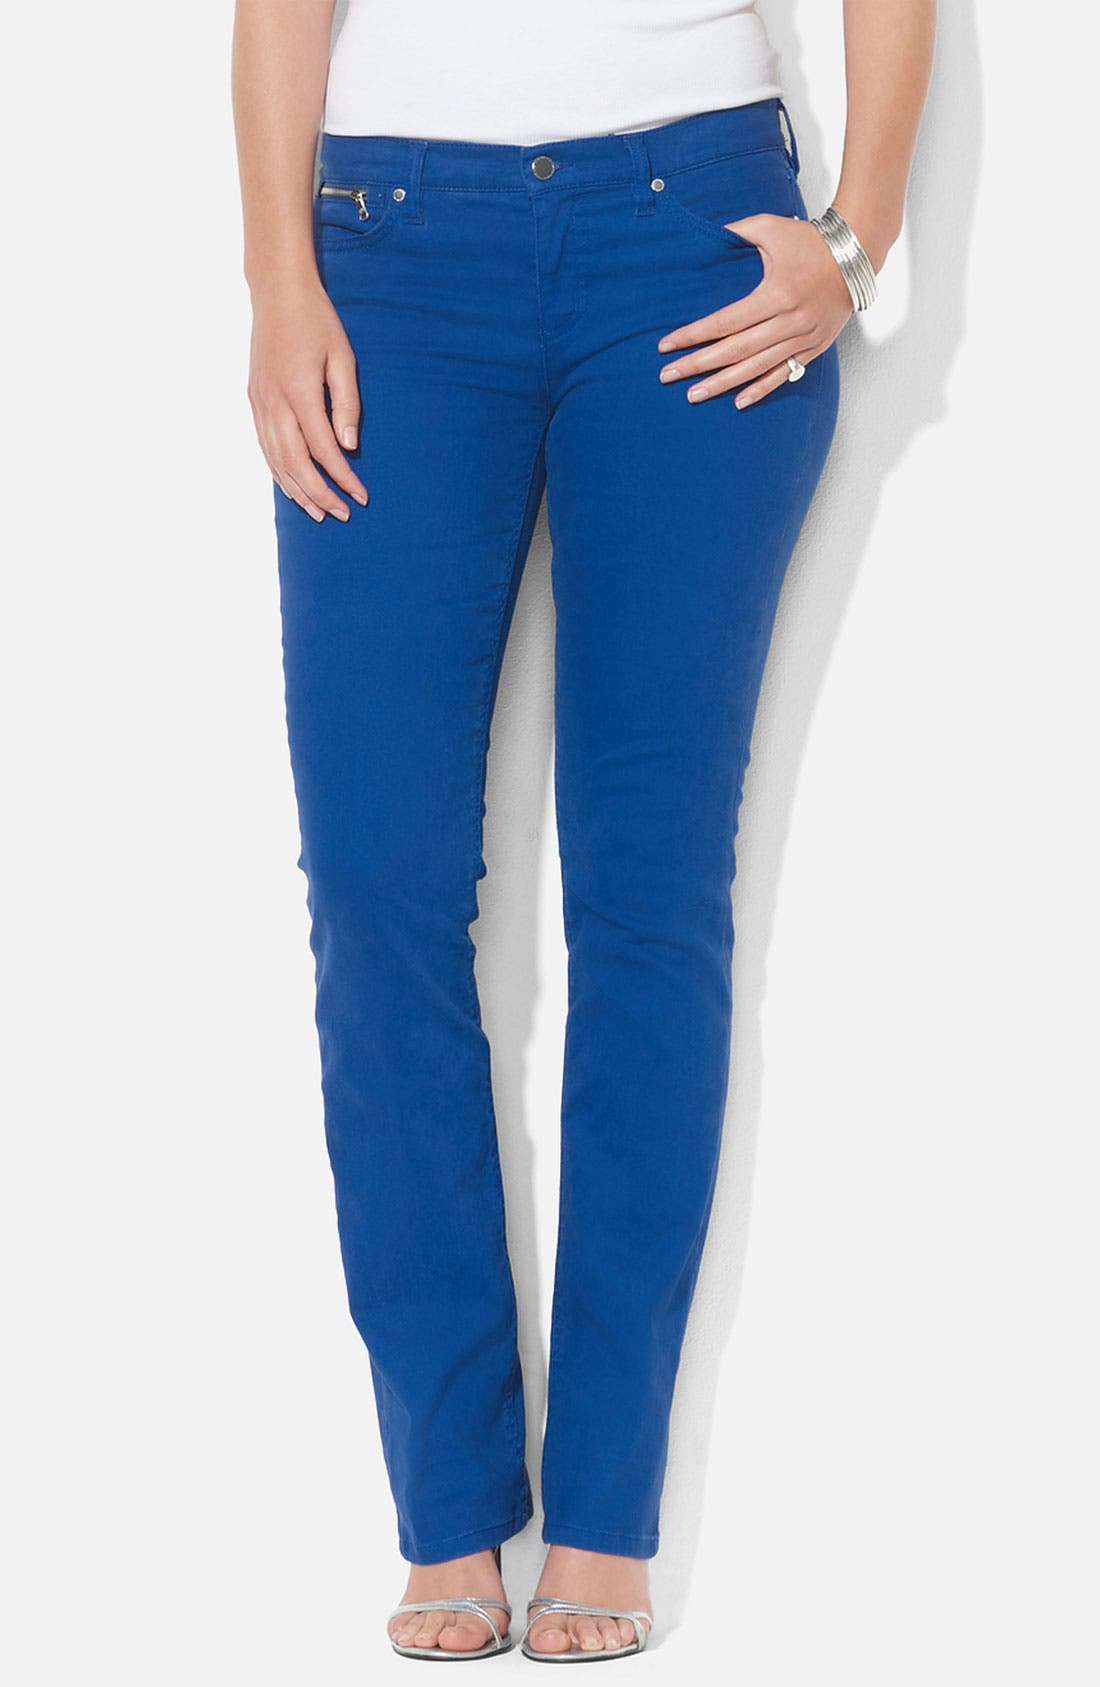 Alternate Image 1 Selected - Lauren Ralph Lauren Slim Straight Leg Colored Jeans (Plus)